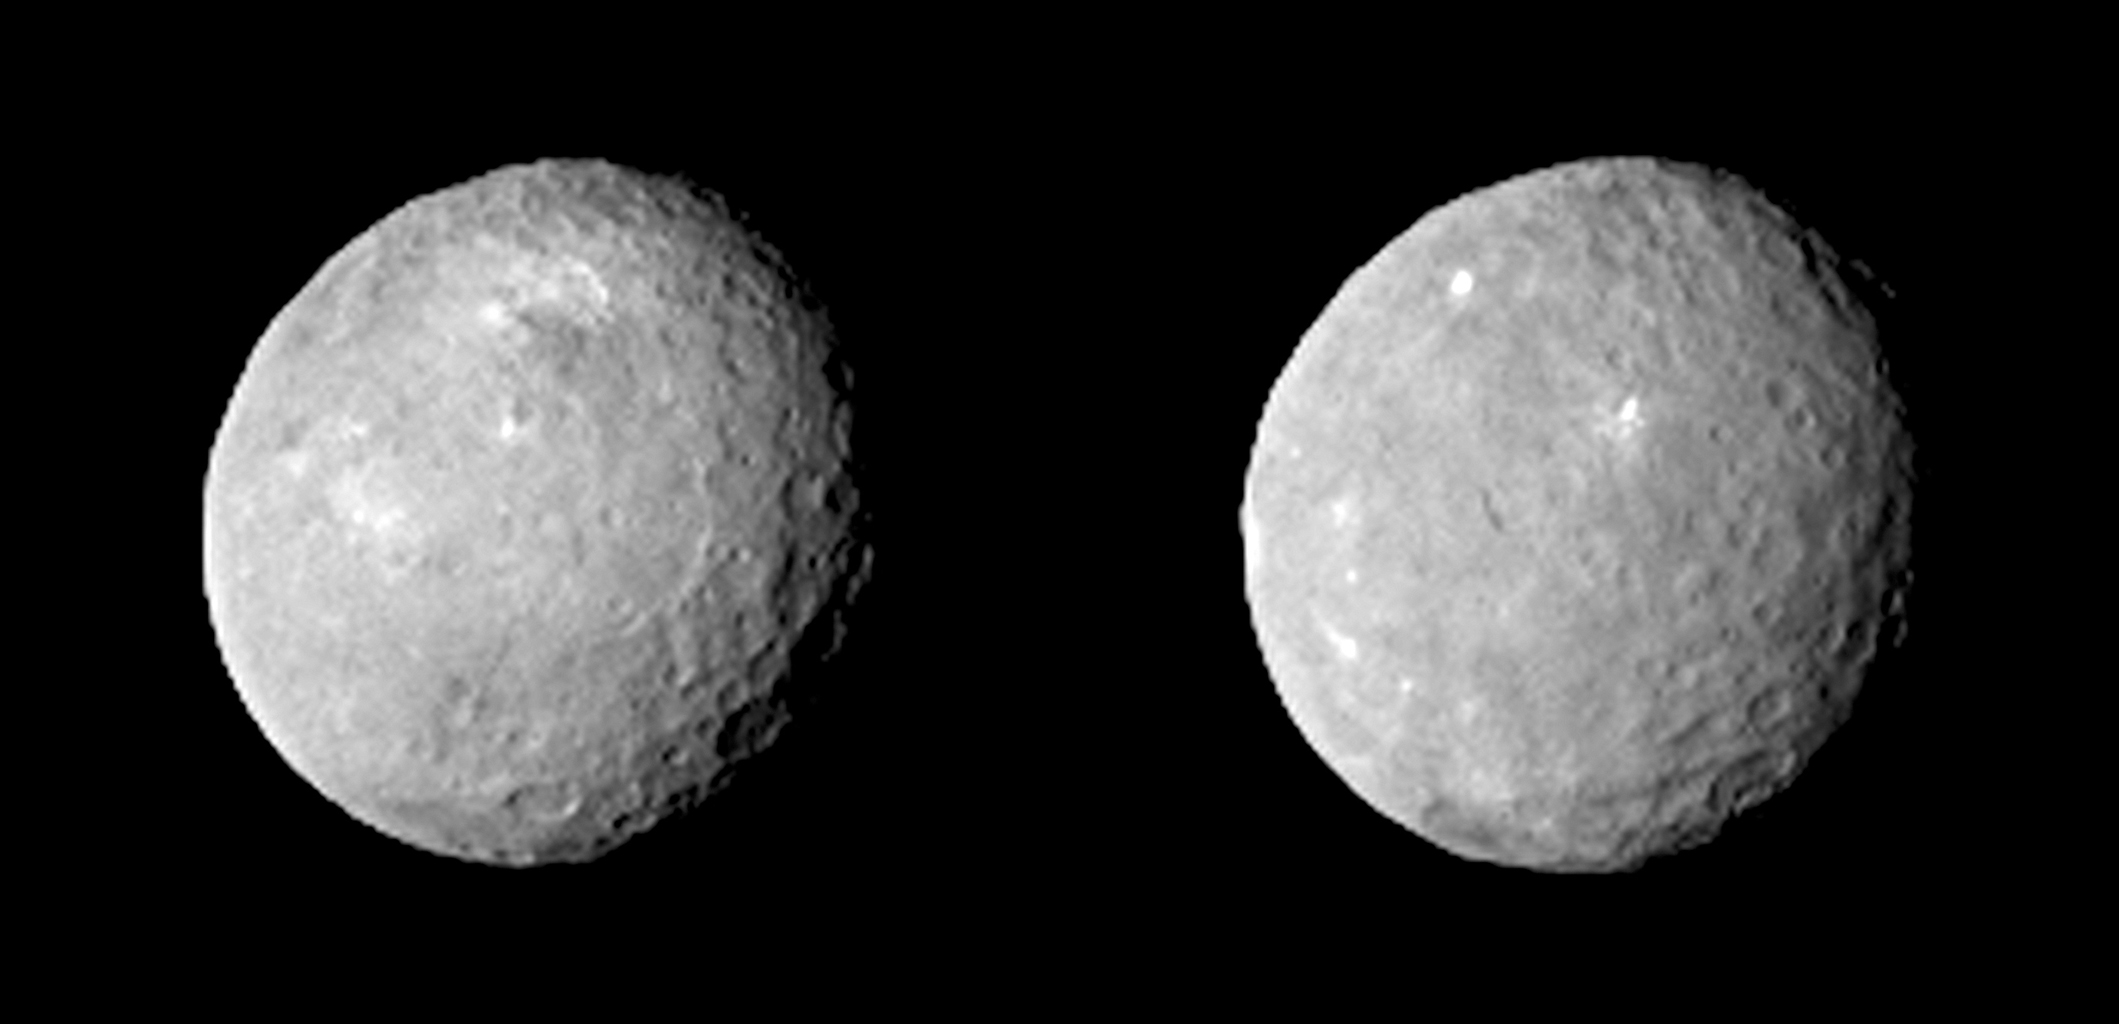 These two views of Ceres were acquired by NASA's Dawn spacecraft on Feb. 12, 2015, from a distance of about 52,000 miles (83,000 kilometers) as the dwarf planet rotated. The images have been magnified from their original size.